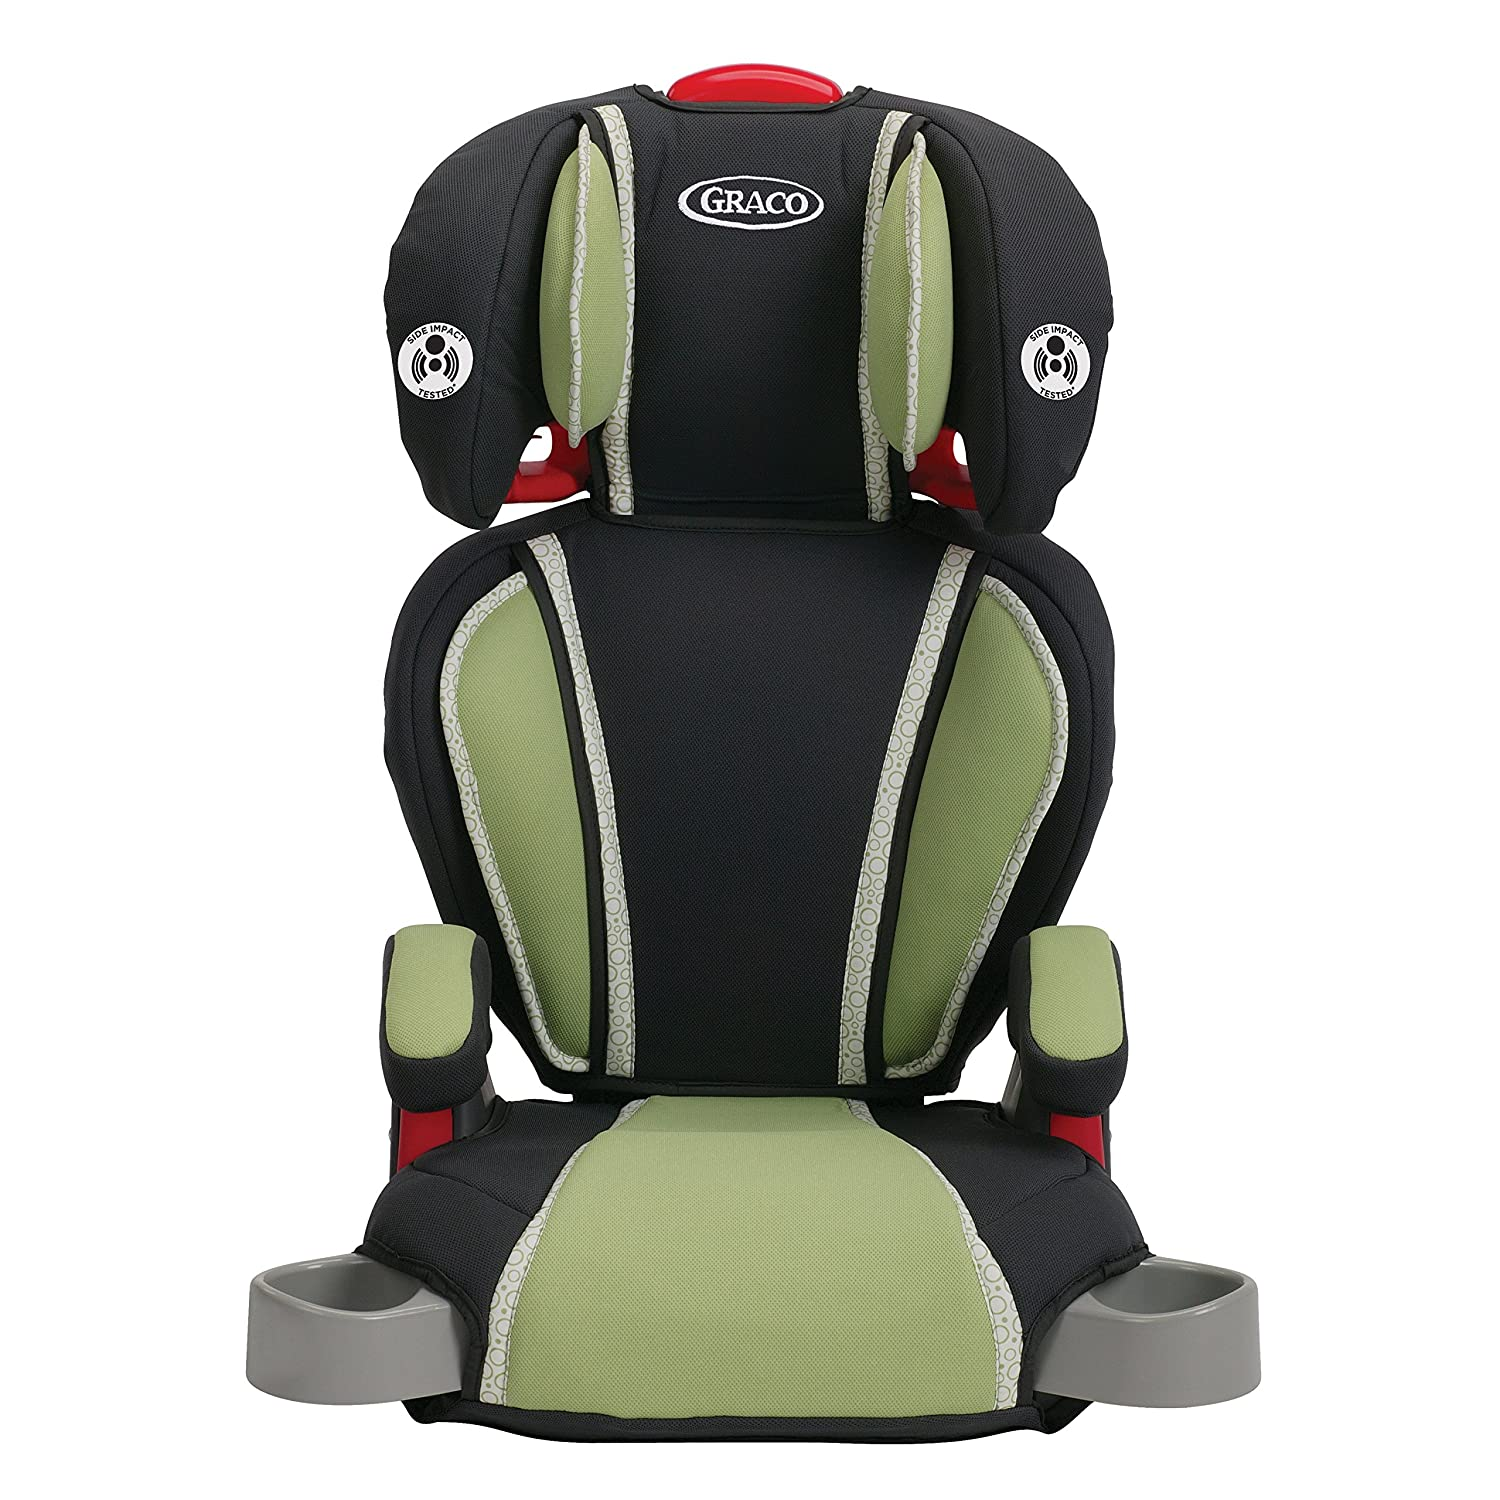 amazon com graco highback turbobooster car seat go green baby rh amazon com Graco Car Seats graco turbobooster lx owners manual